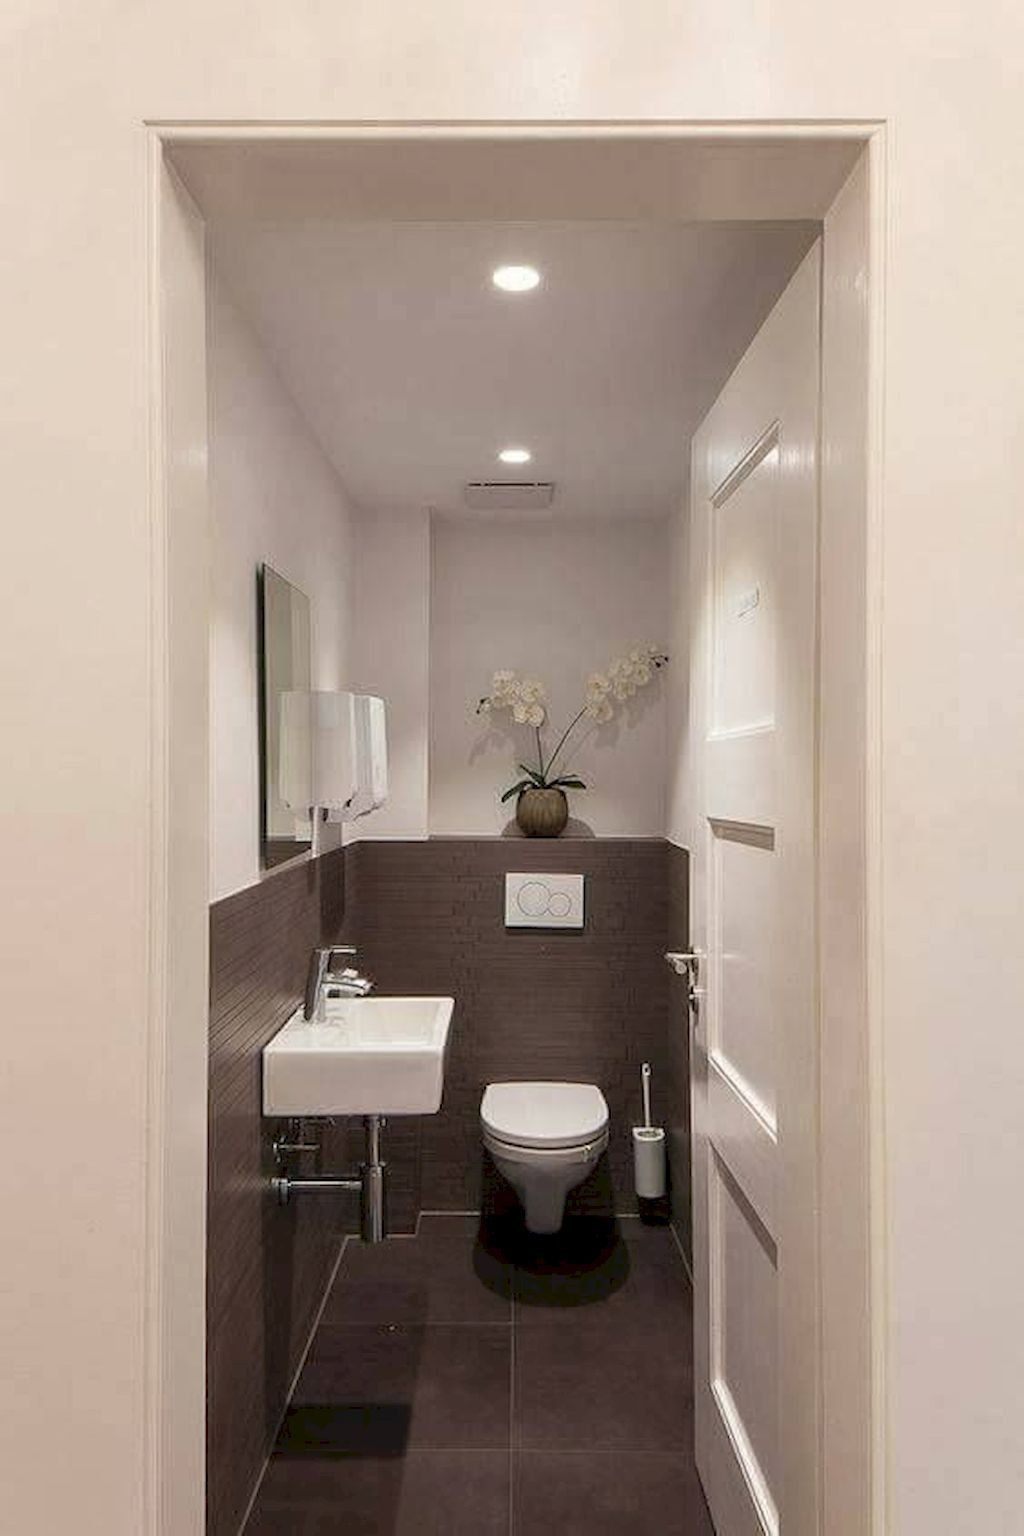 Space Saving Toilet Design For Small Bathroom Home To Z Toilet Design Small Toilet Room Bathroom Interior